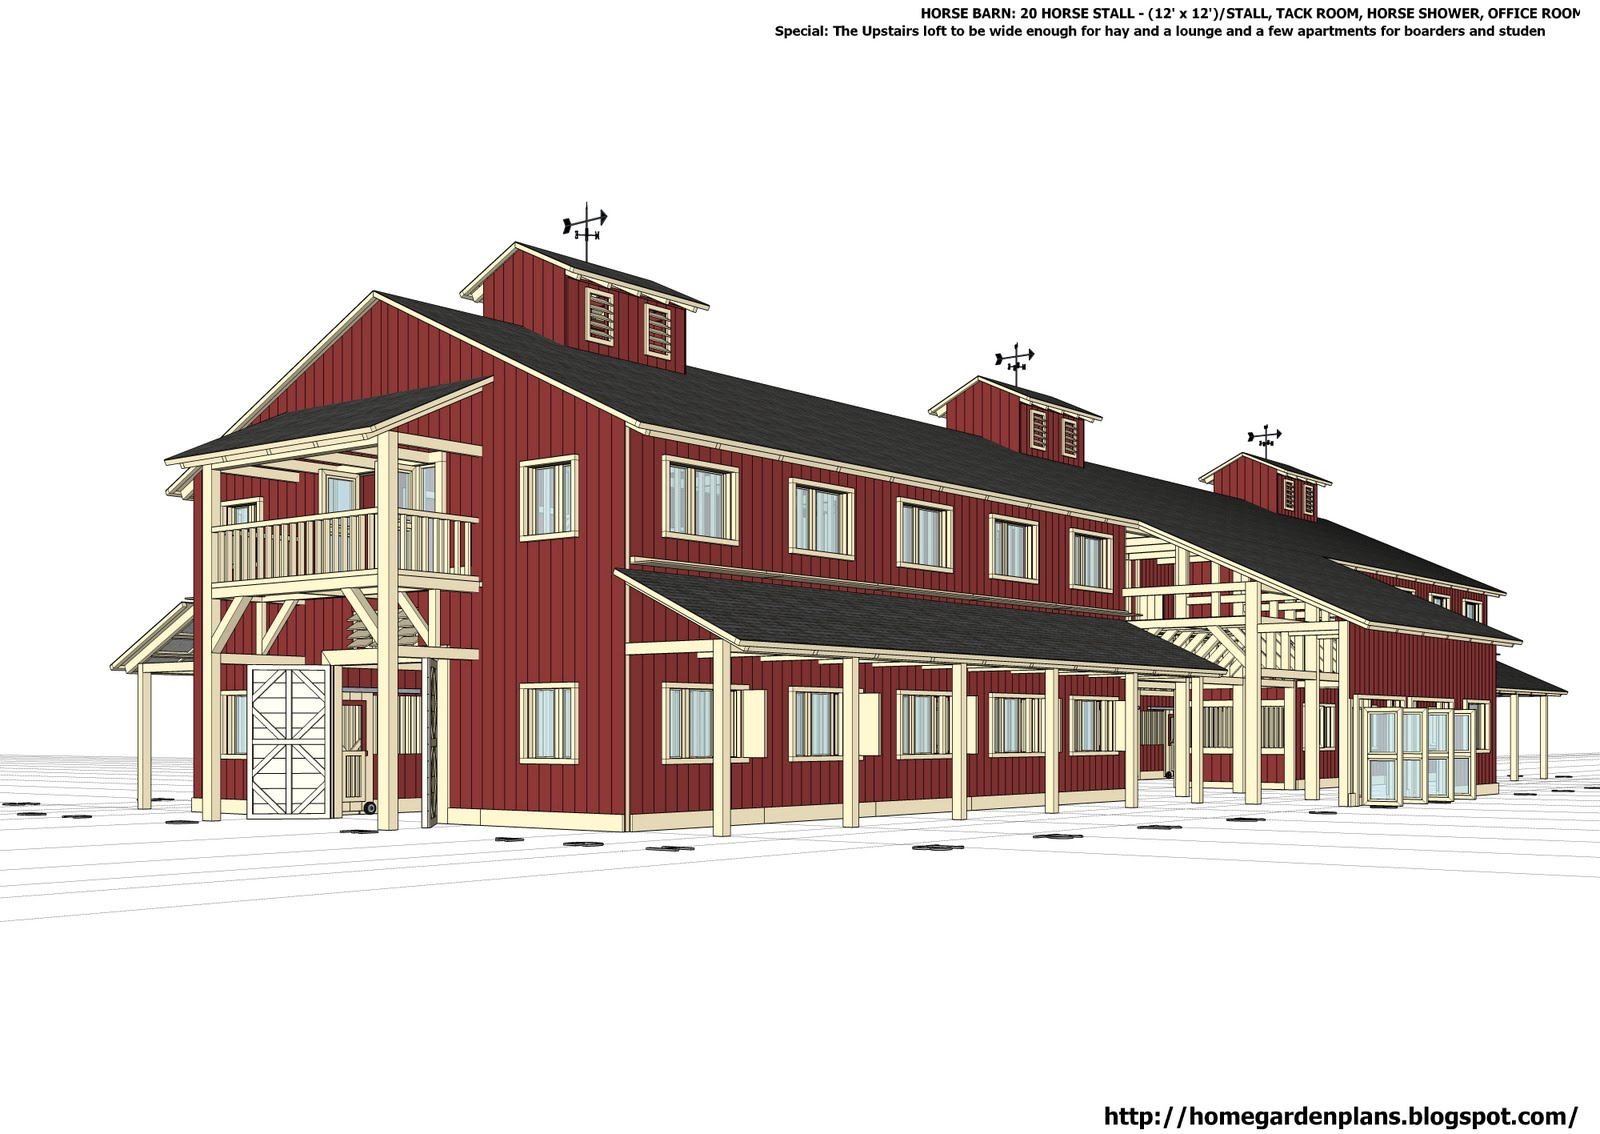 82 2 Horse Barn Ideas 2 Stall Horse Barn Plan With Loft